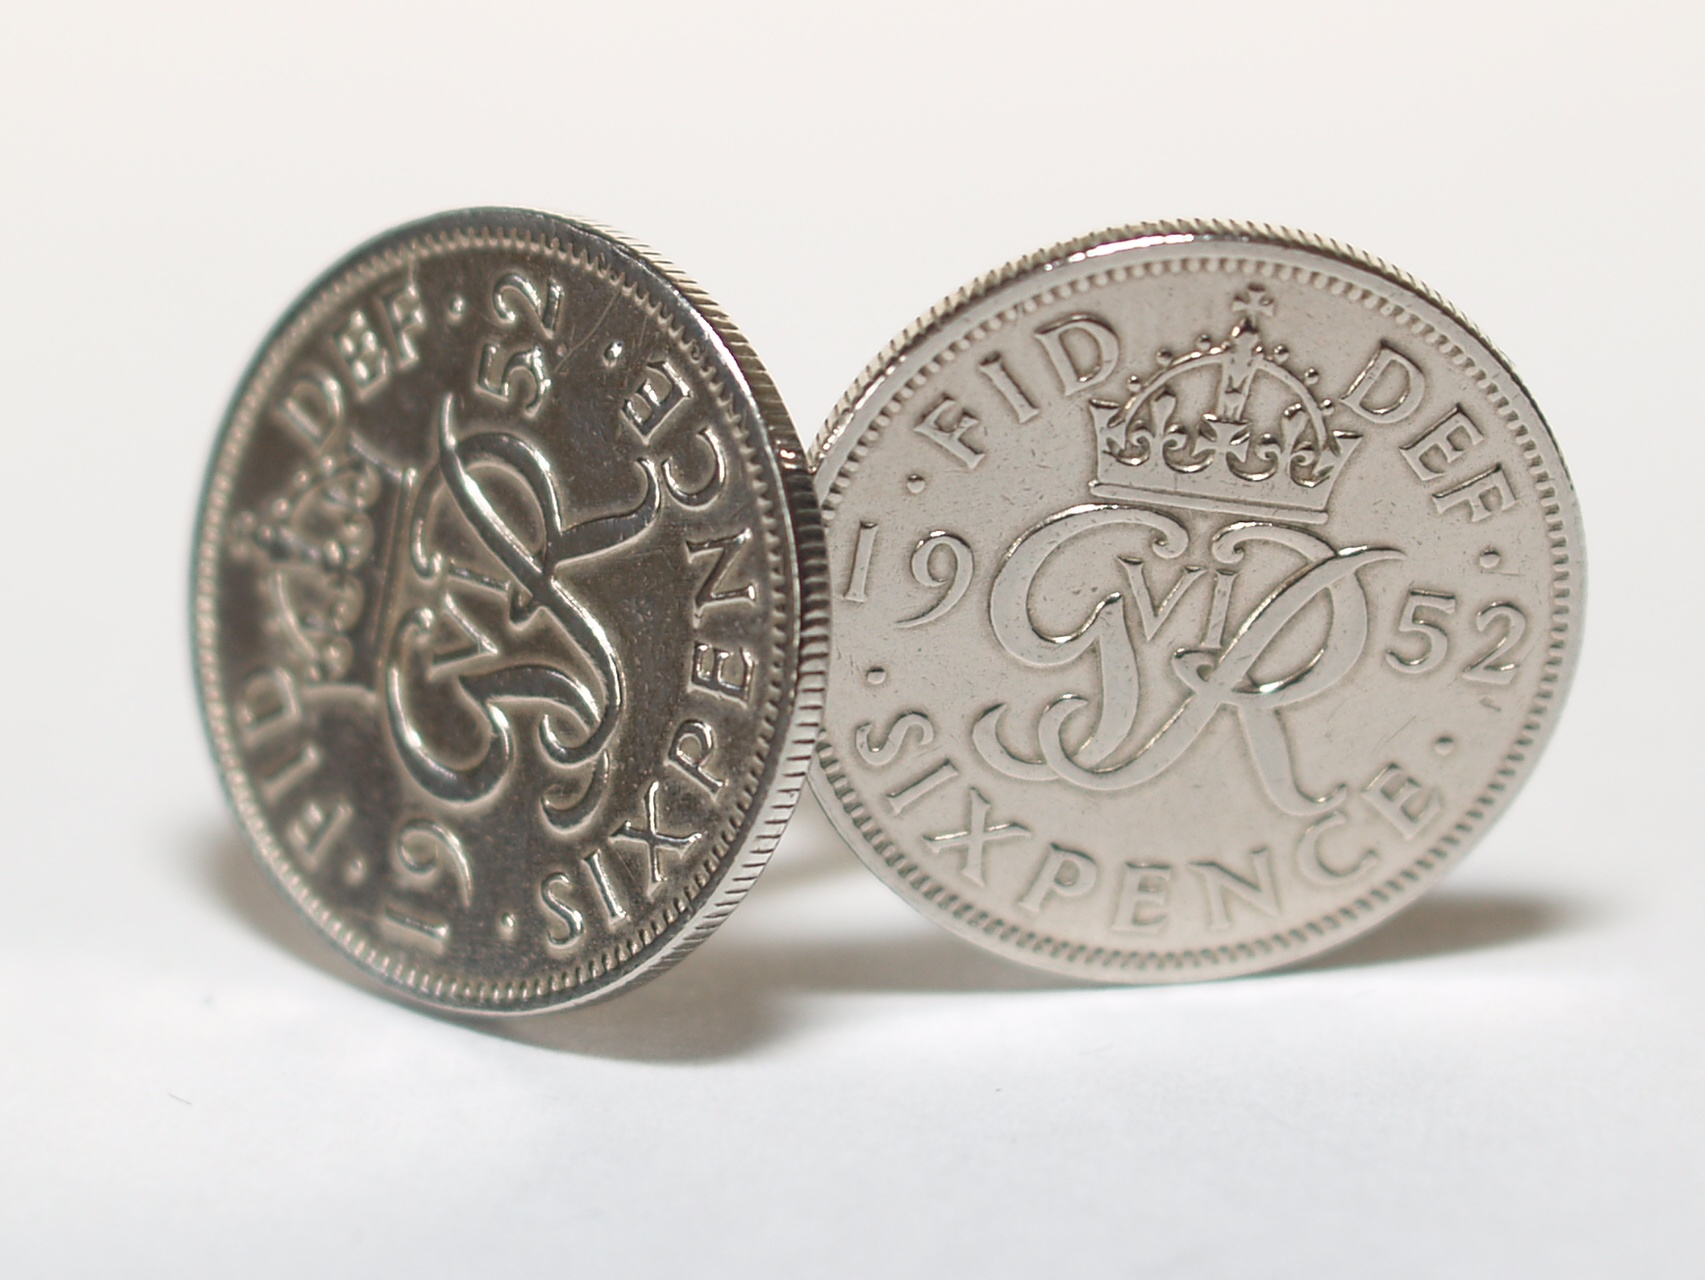 Sixpence for luck 1952 68th Birthday Cufflinks - WOW great gift - Cufflink box